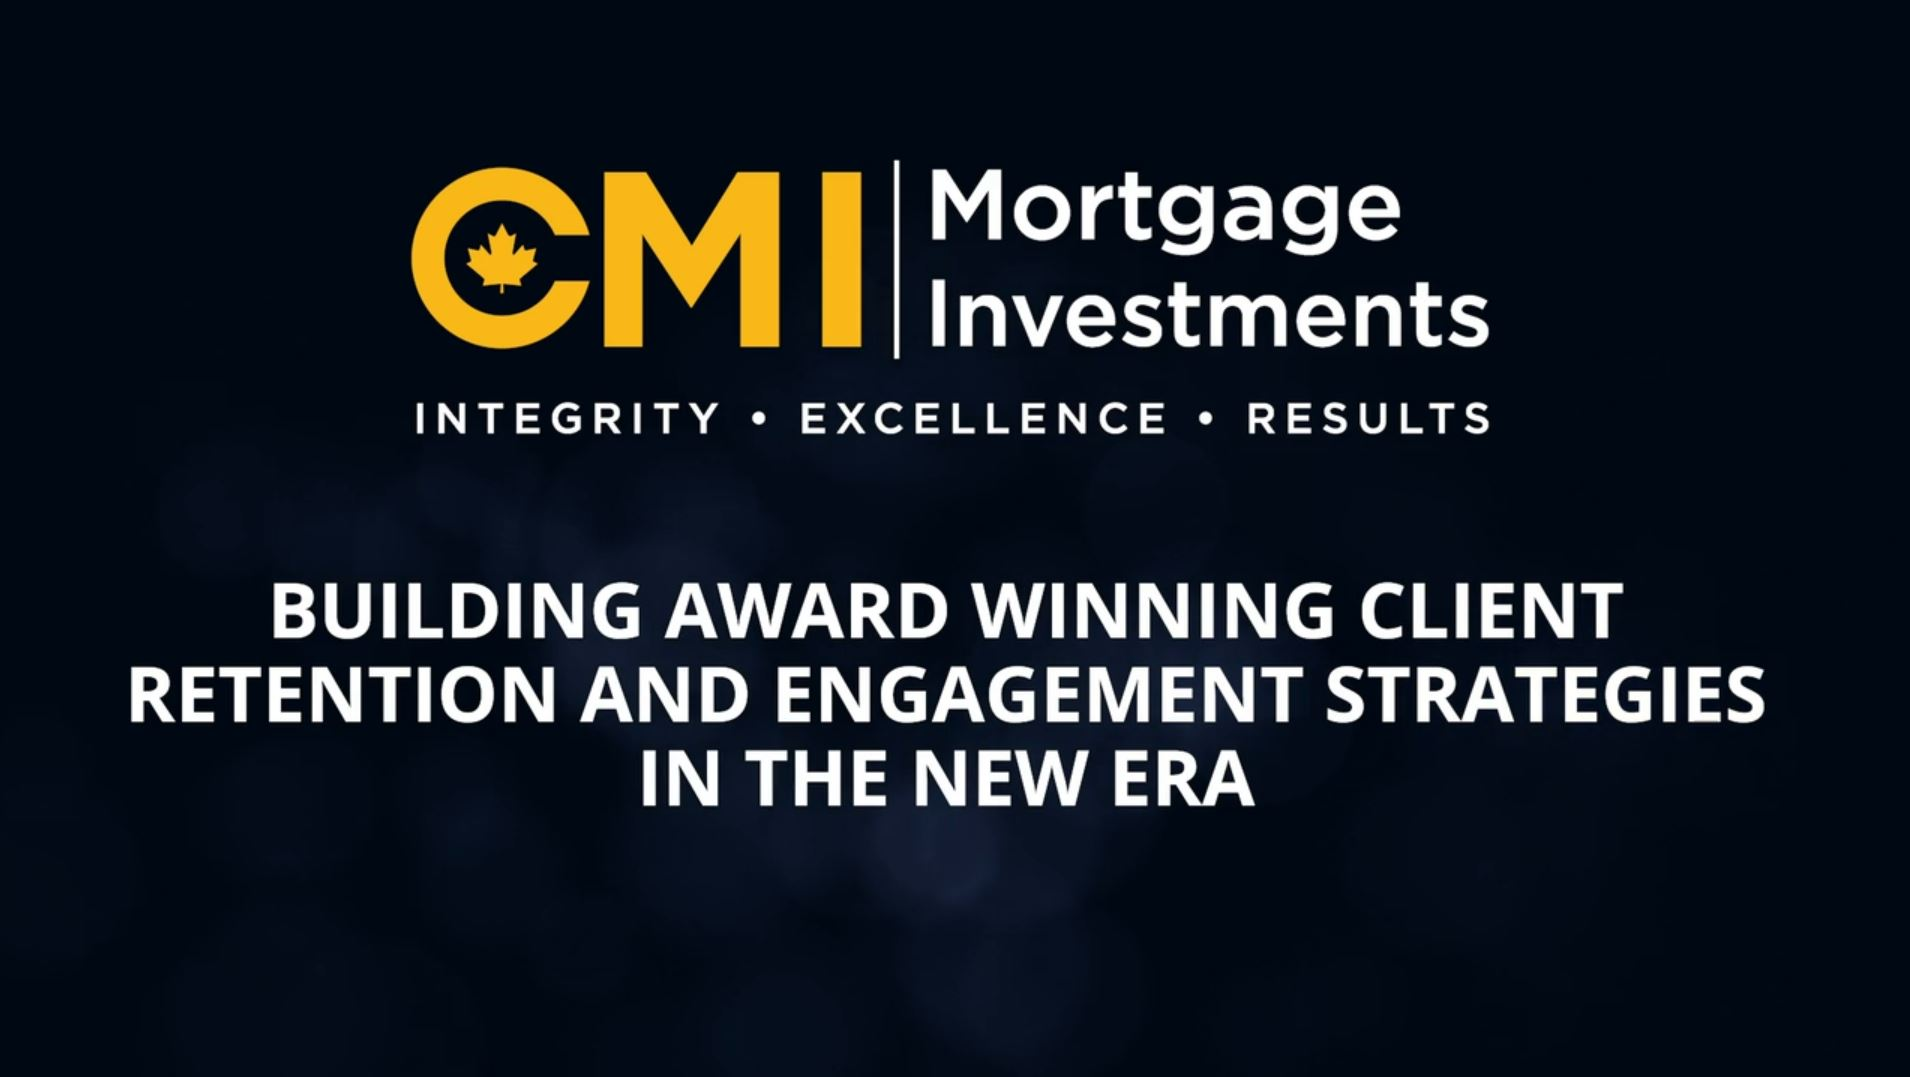 Building award winning client retention and engagement strategies in the new era